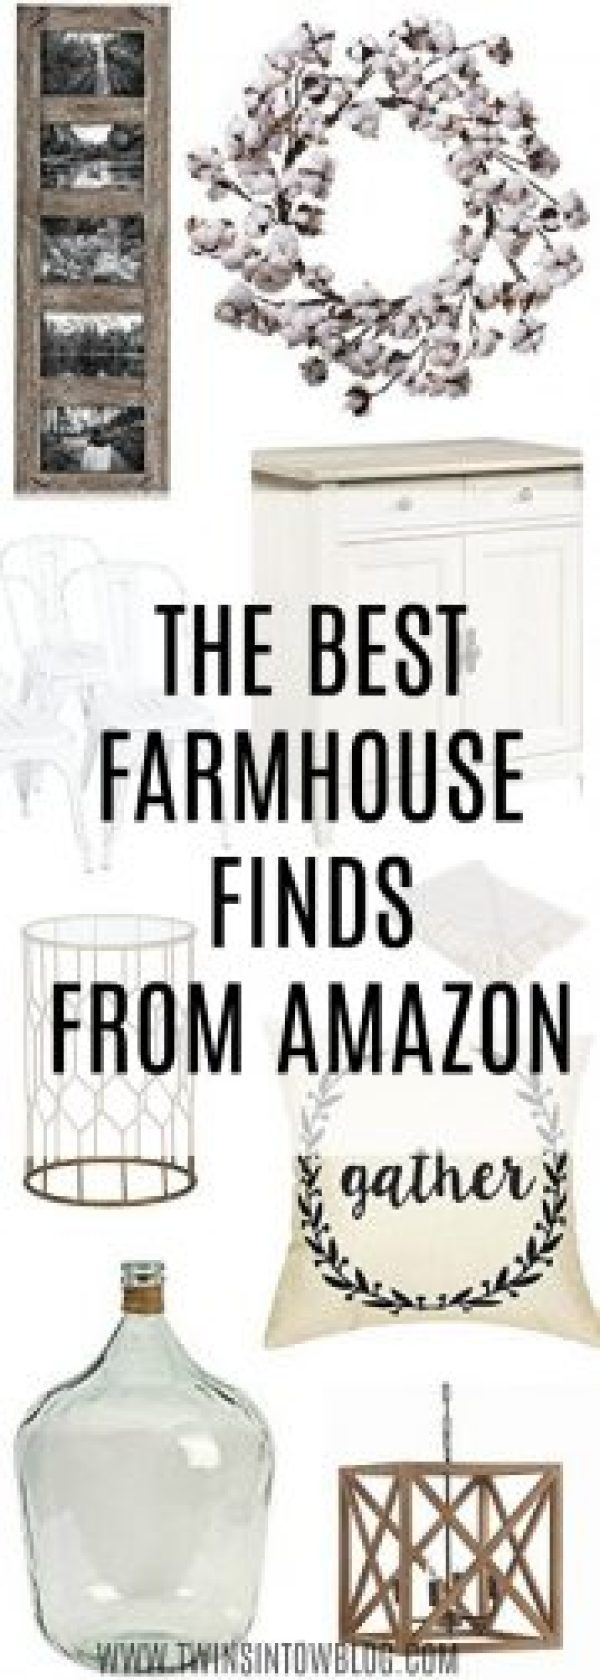 Farmhouse decor from amazon